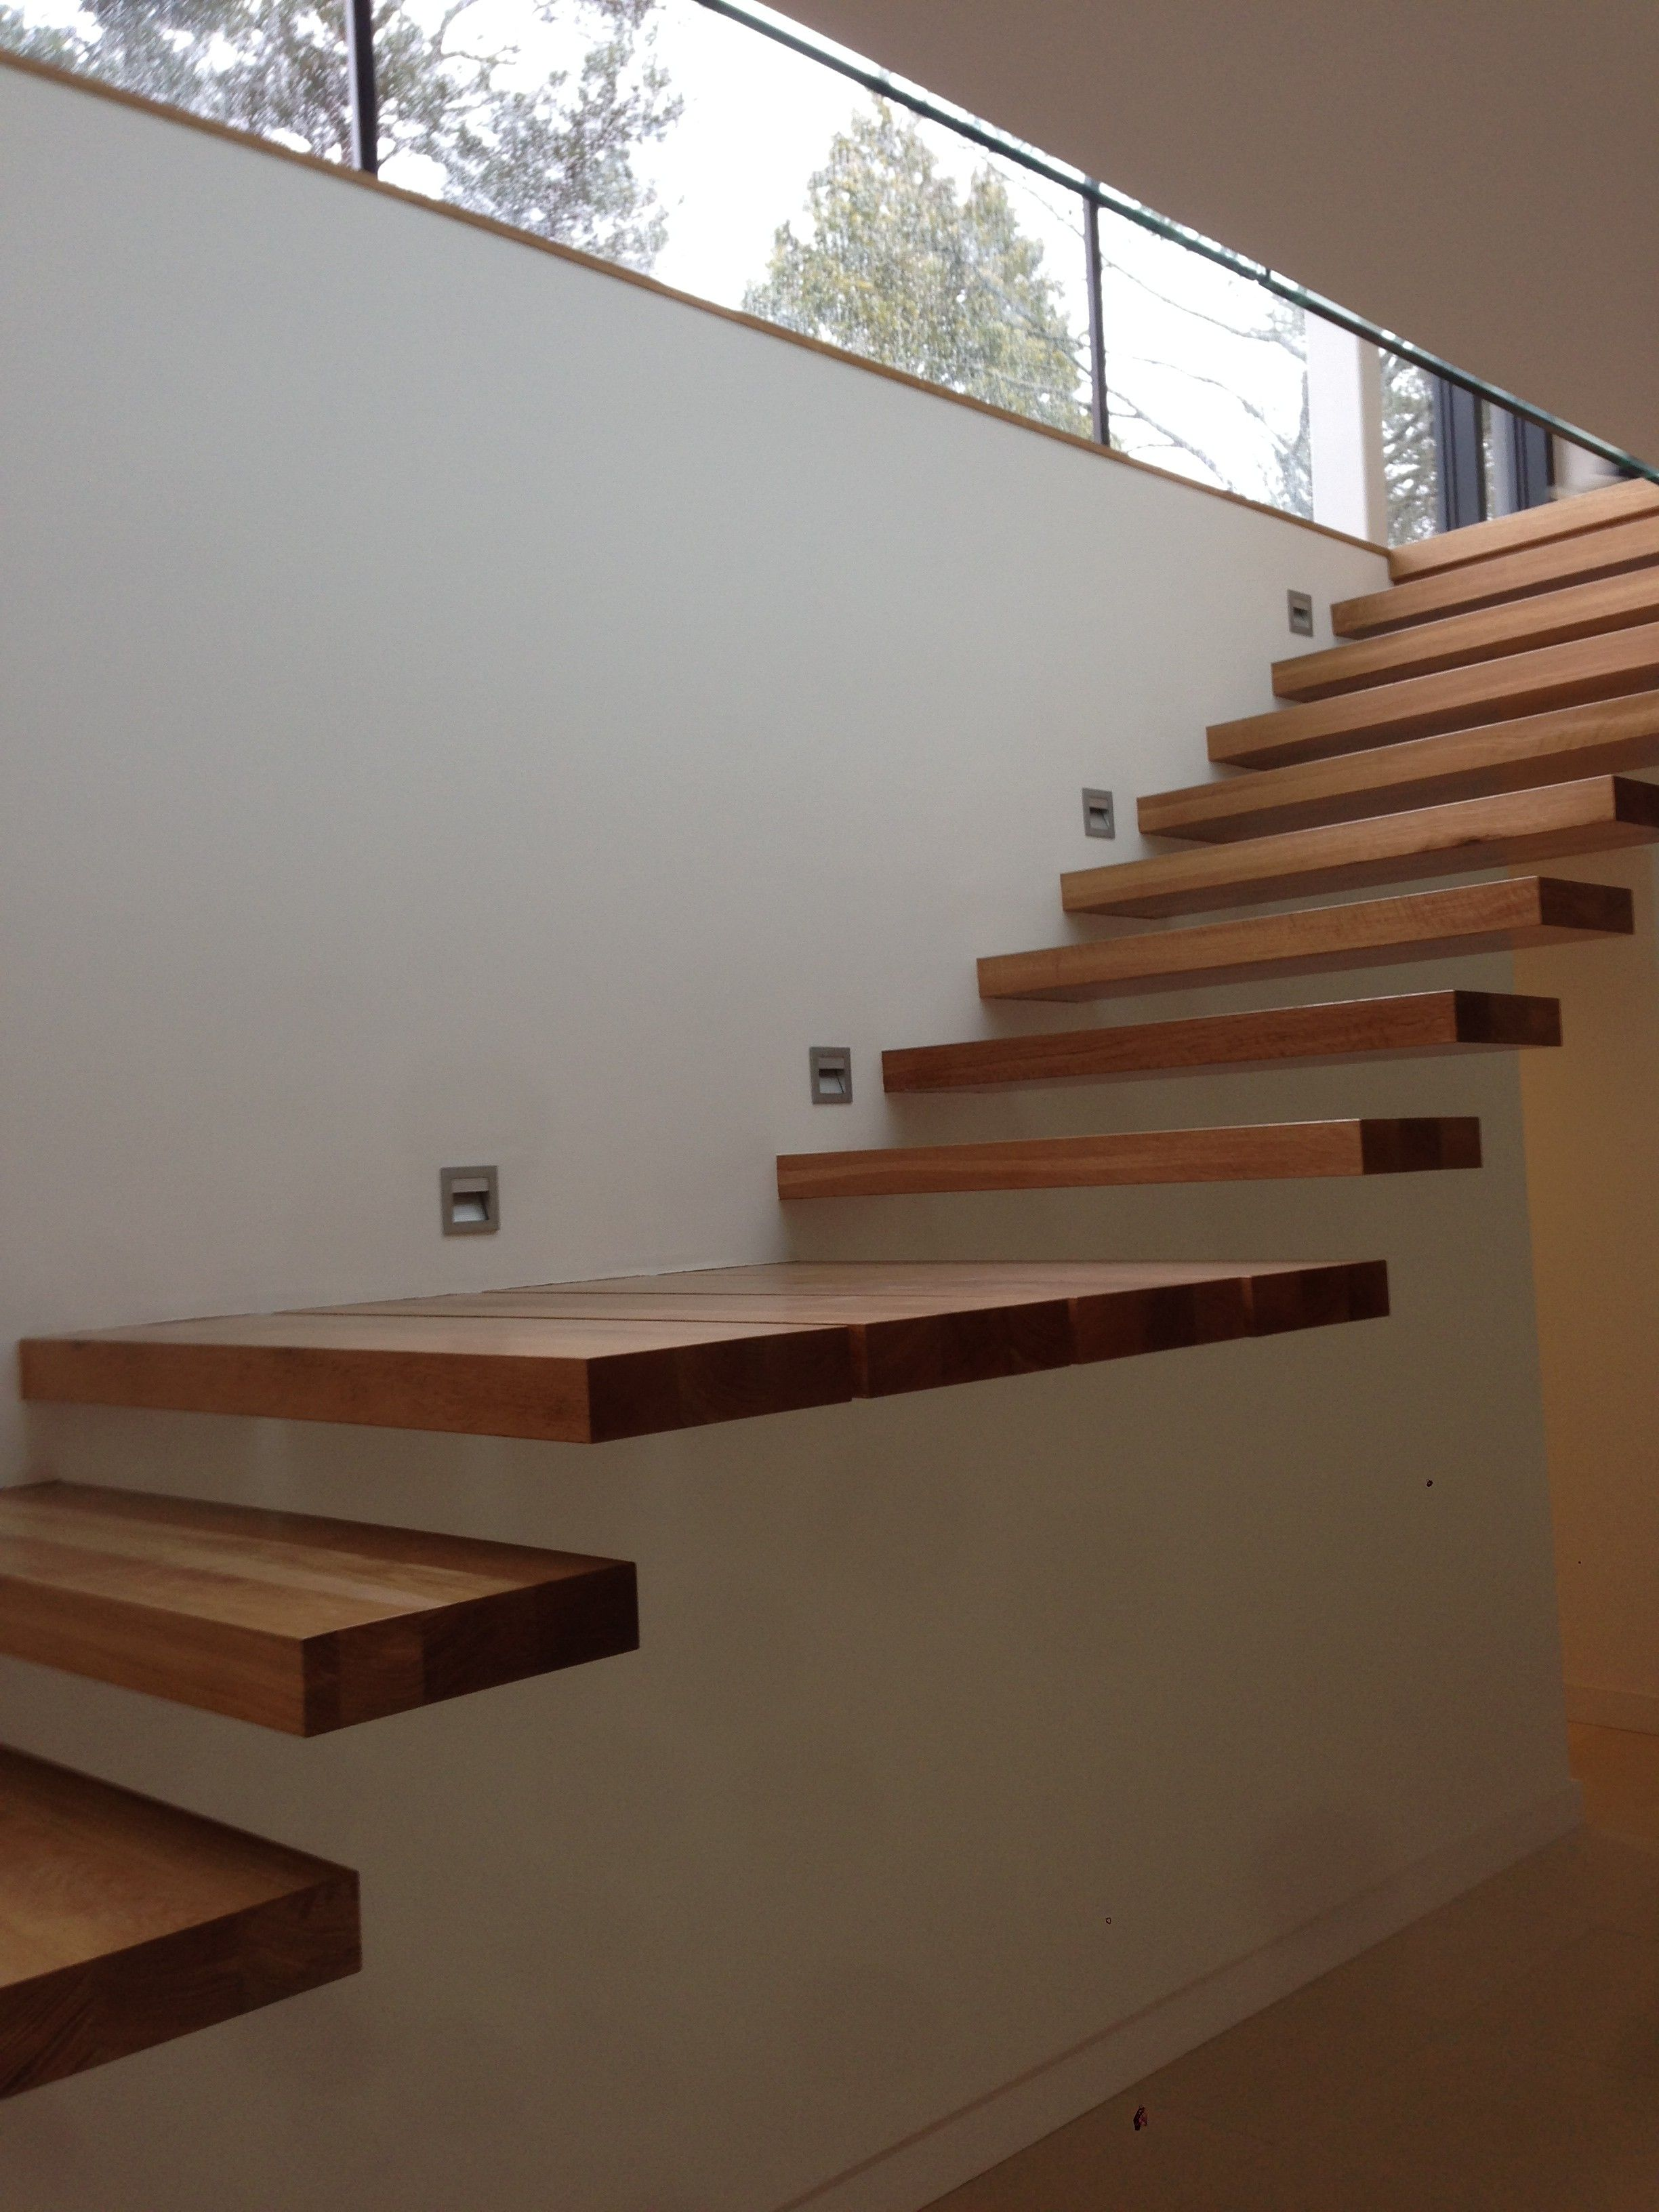 Design Floating Steps amazing teak wood floating stairs attach on wall without handle rails as minimalist decors ideas